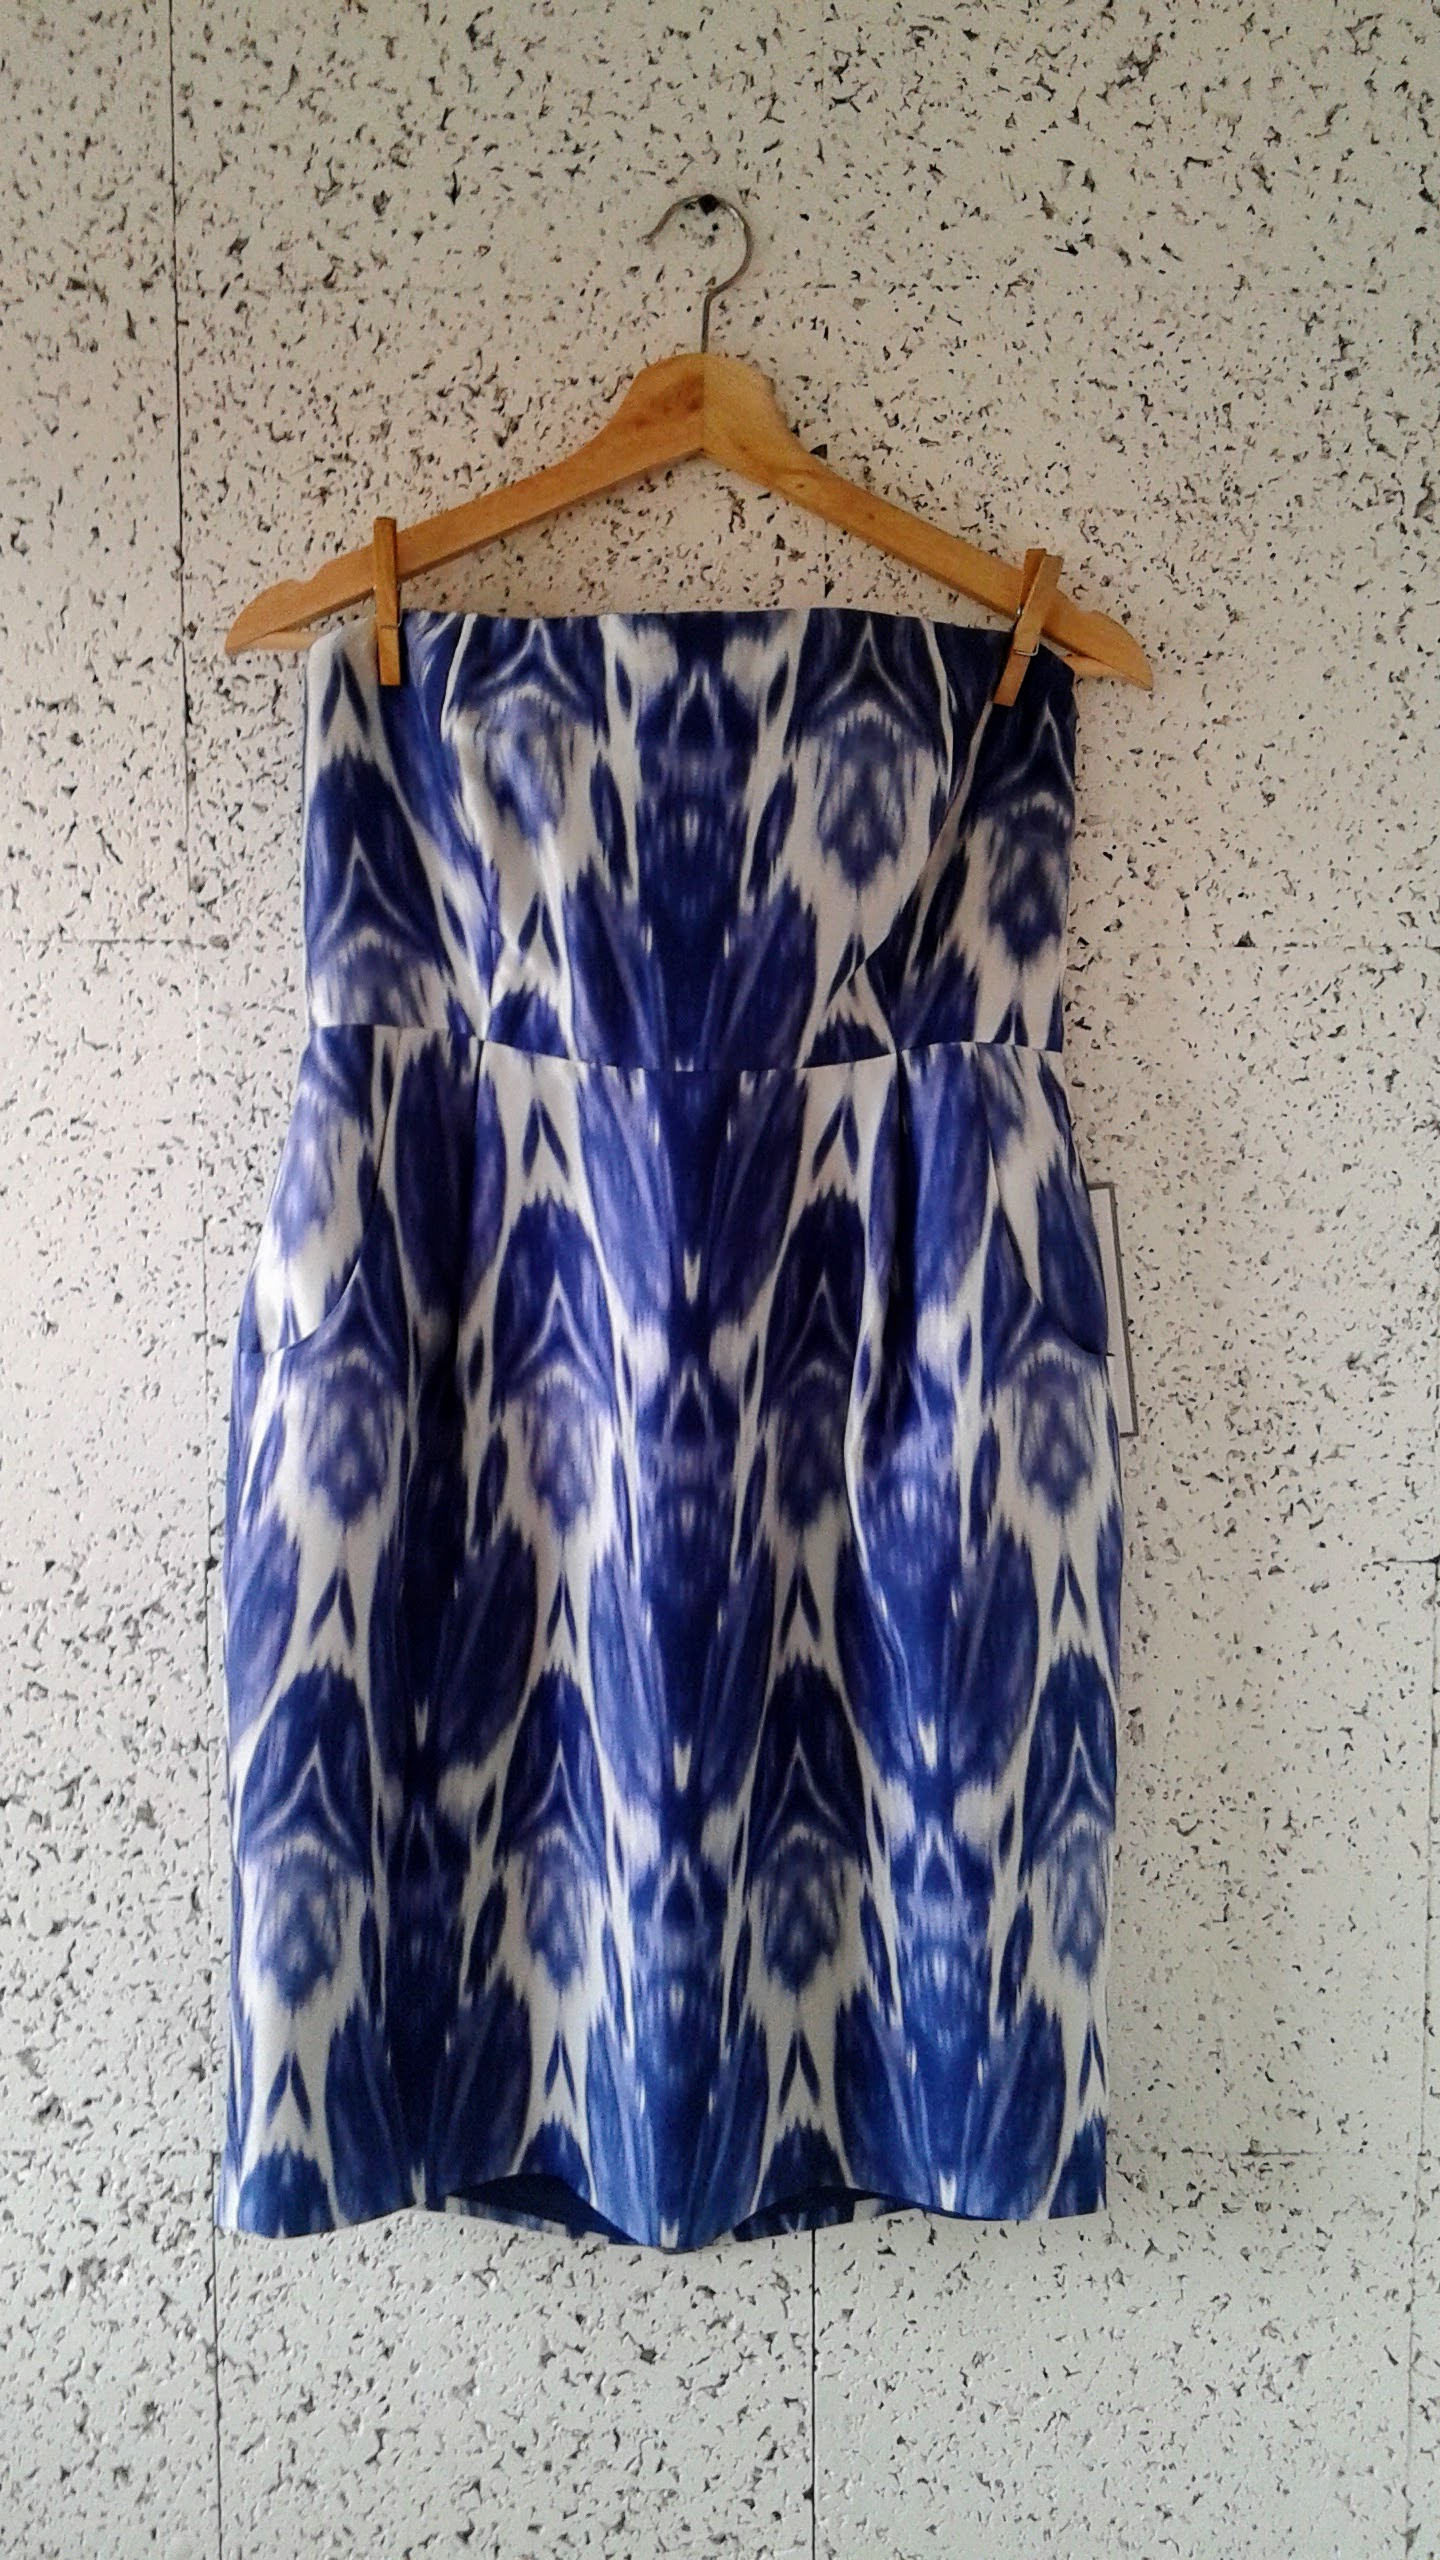 JCrew dress (NWT); Size 8, $42